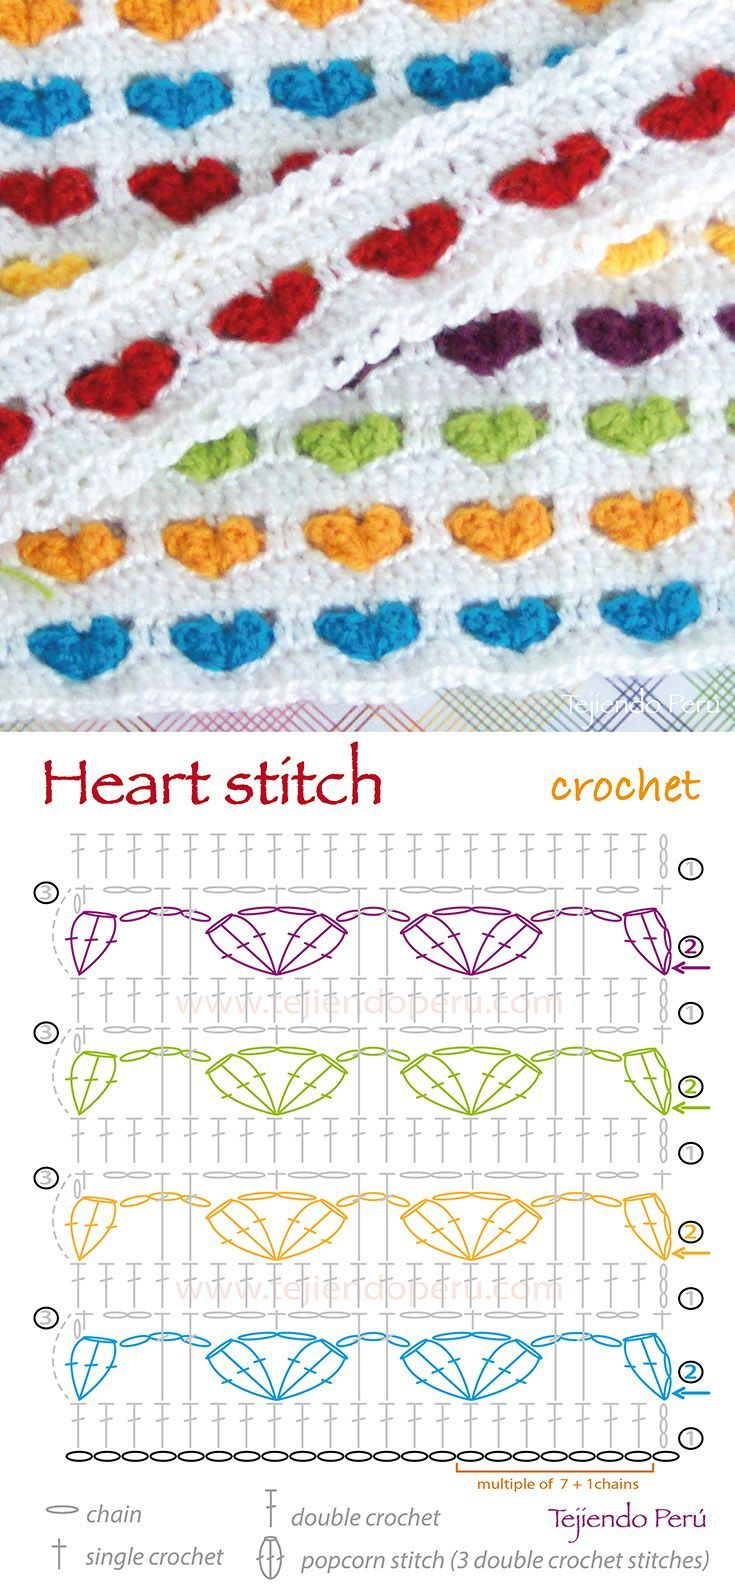 Crochet heart stitch pattern (diagram or chart)!!: | crochet graphs ...